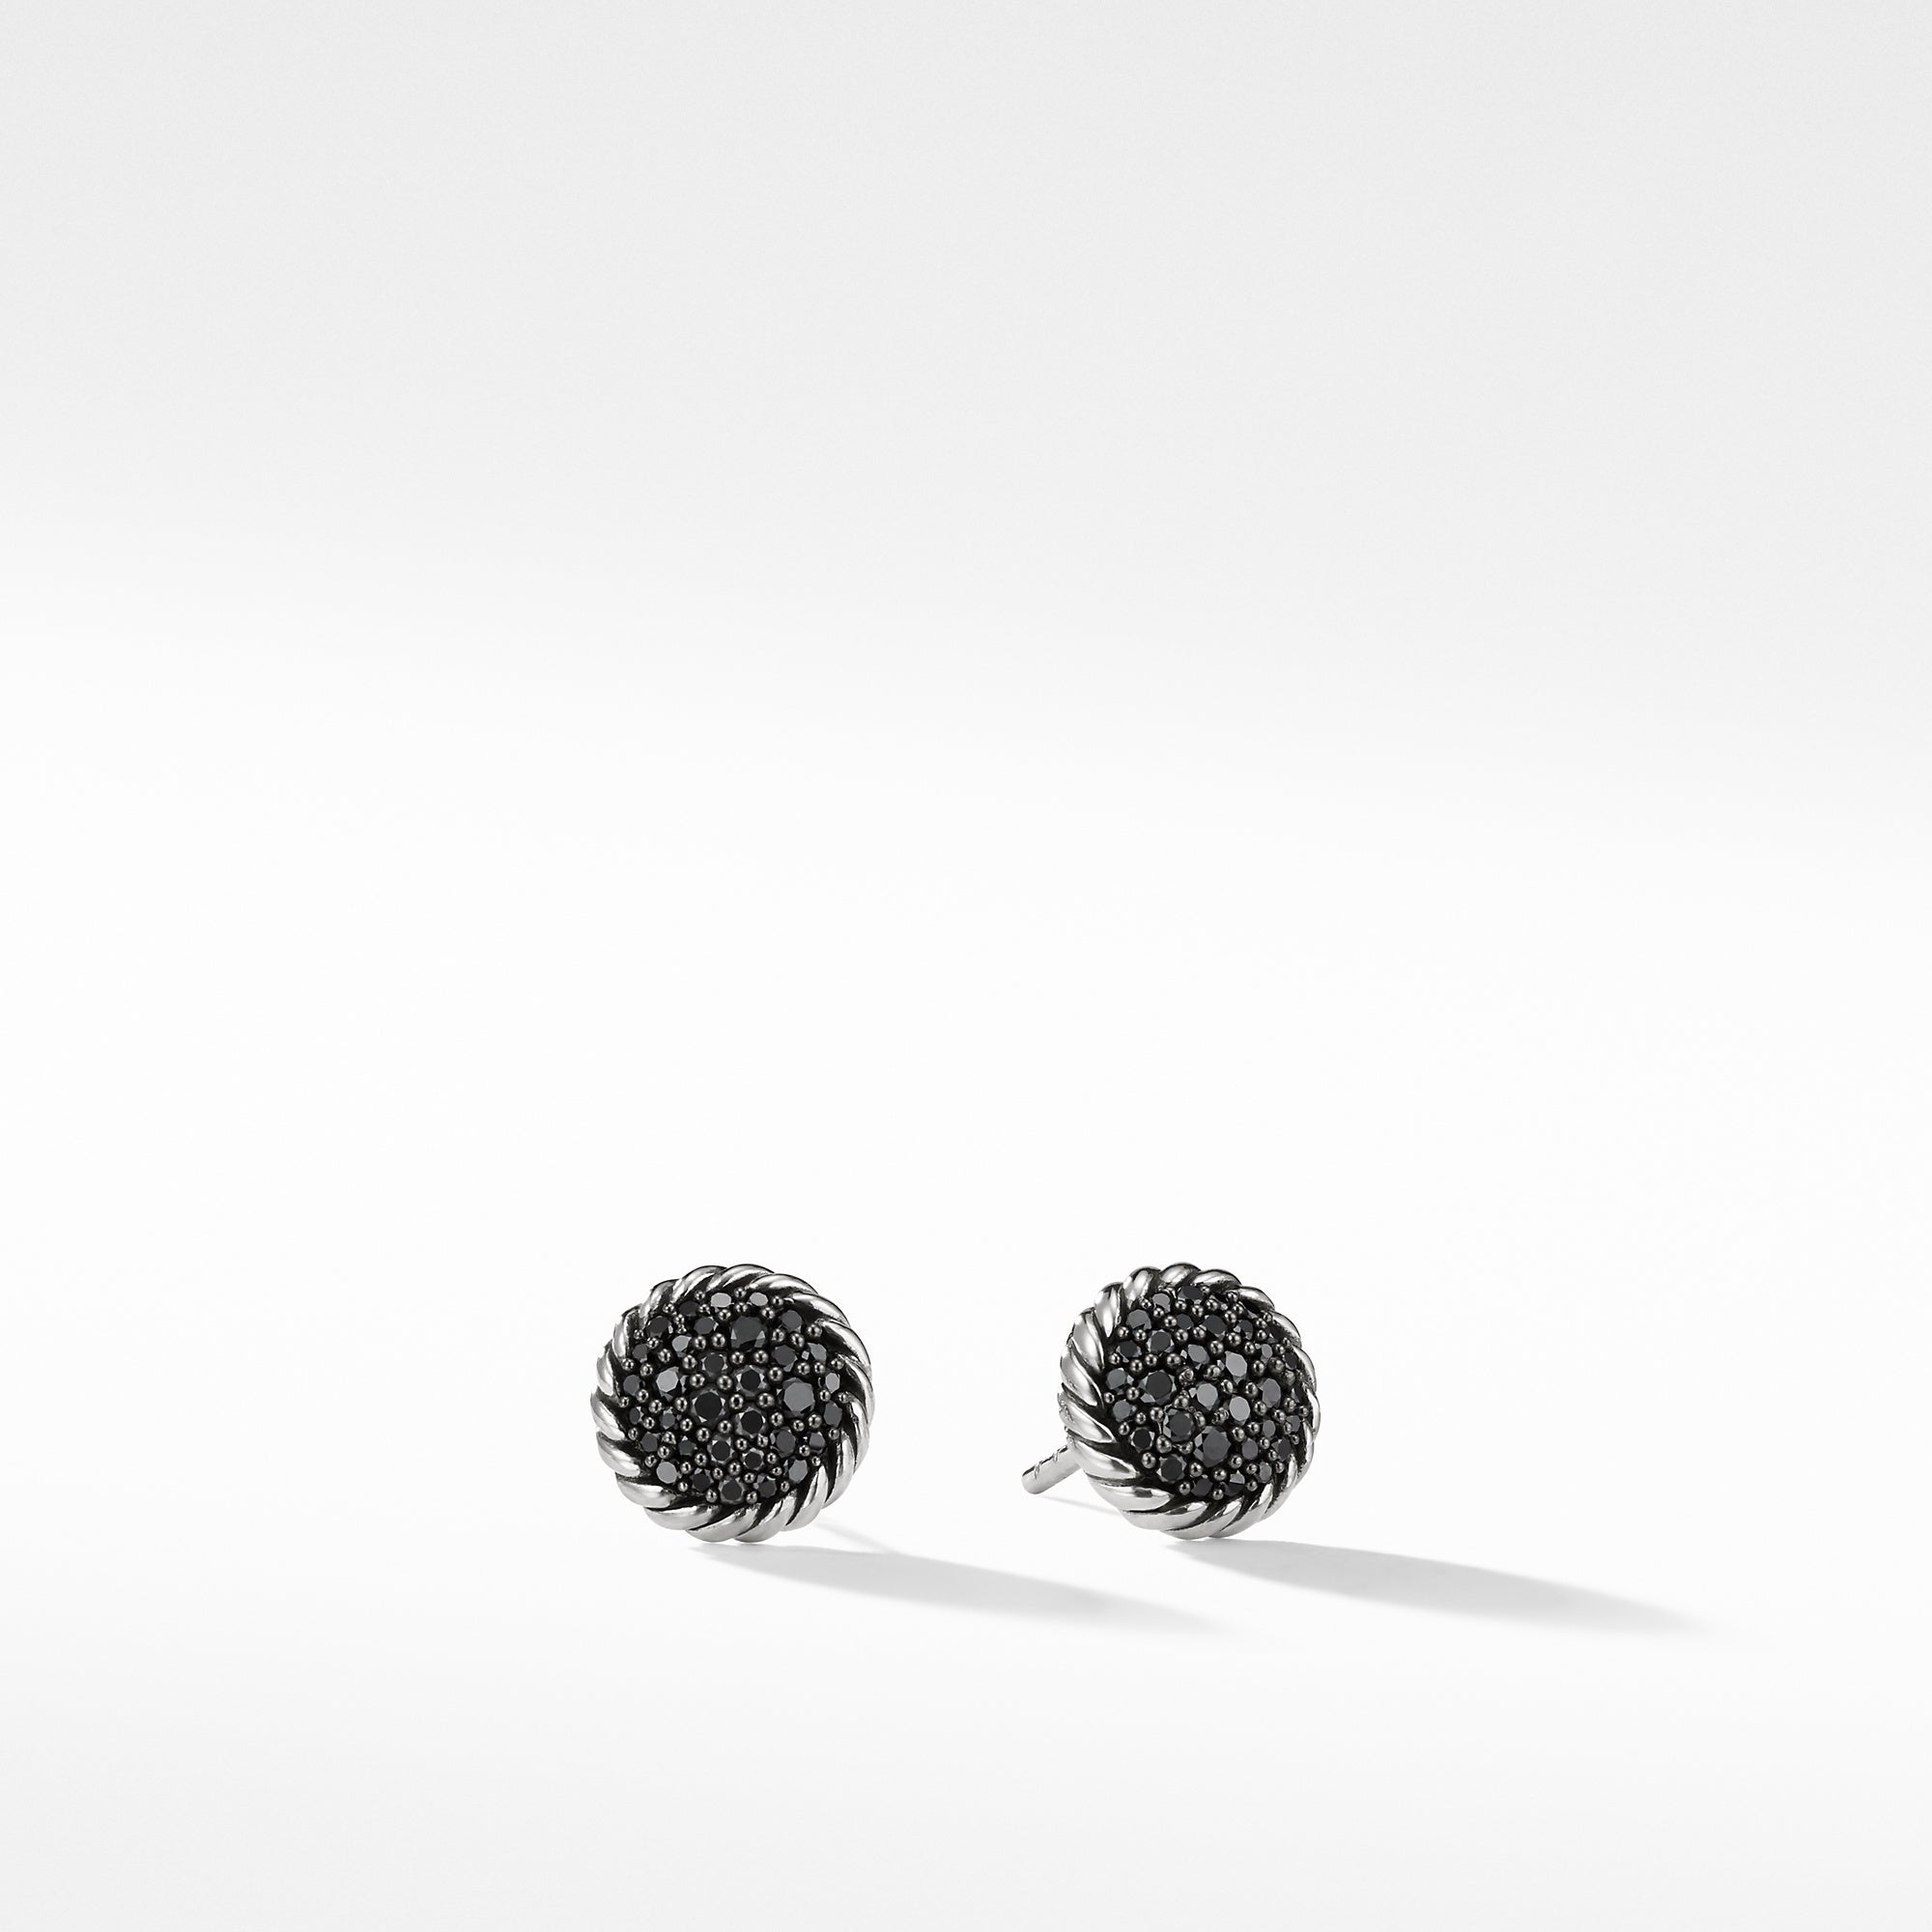 Chatelaine Earrings with Black Diamonds